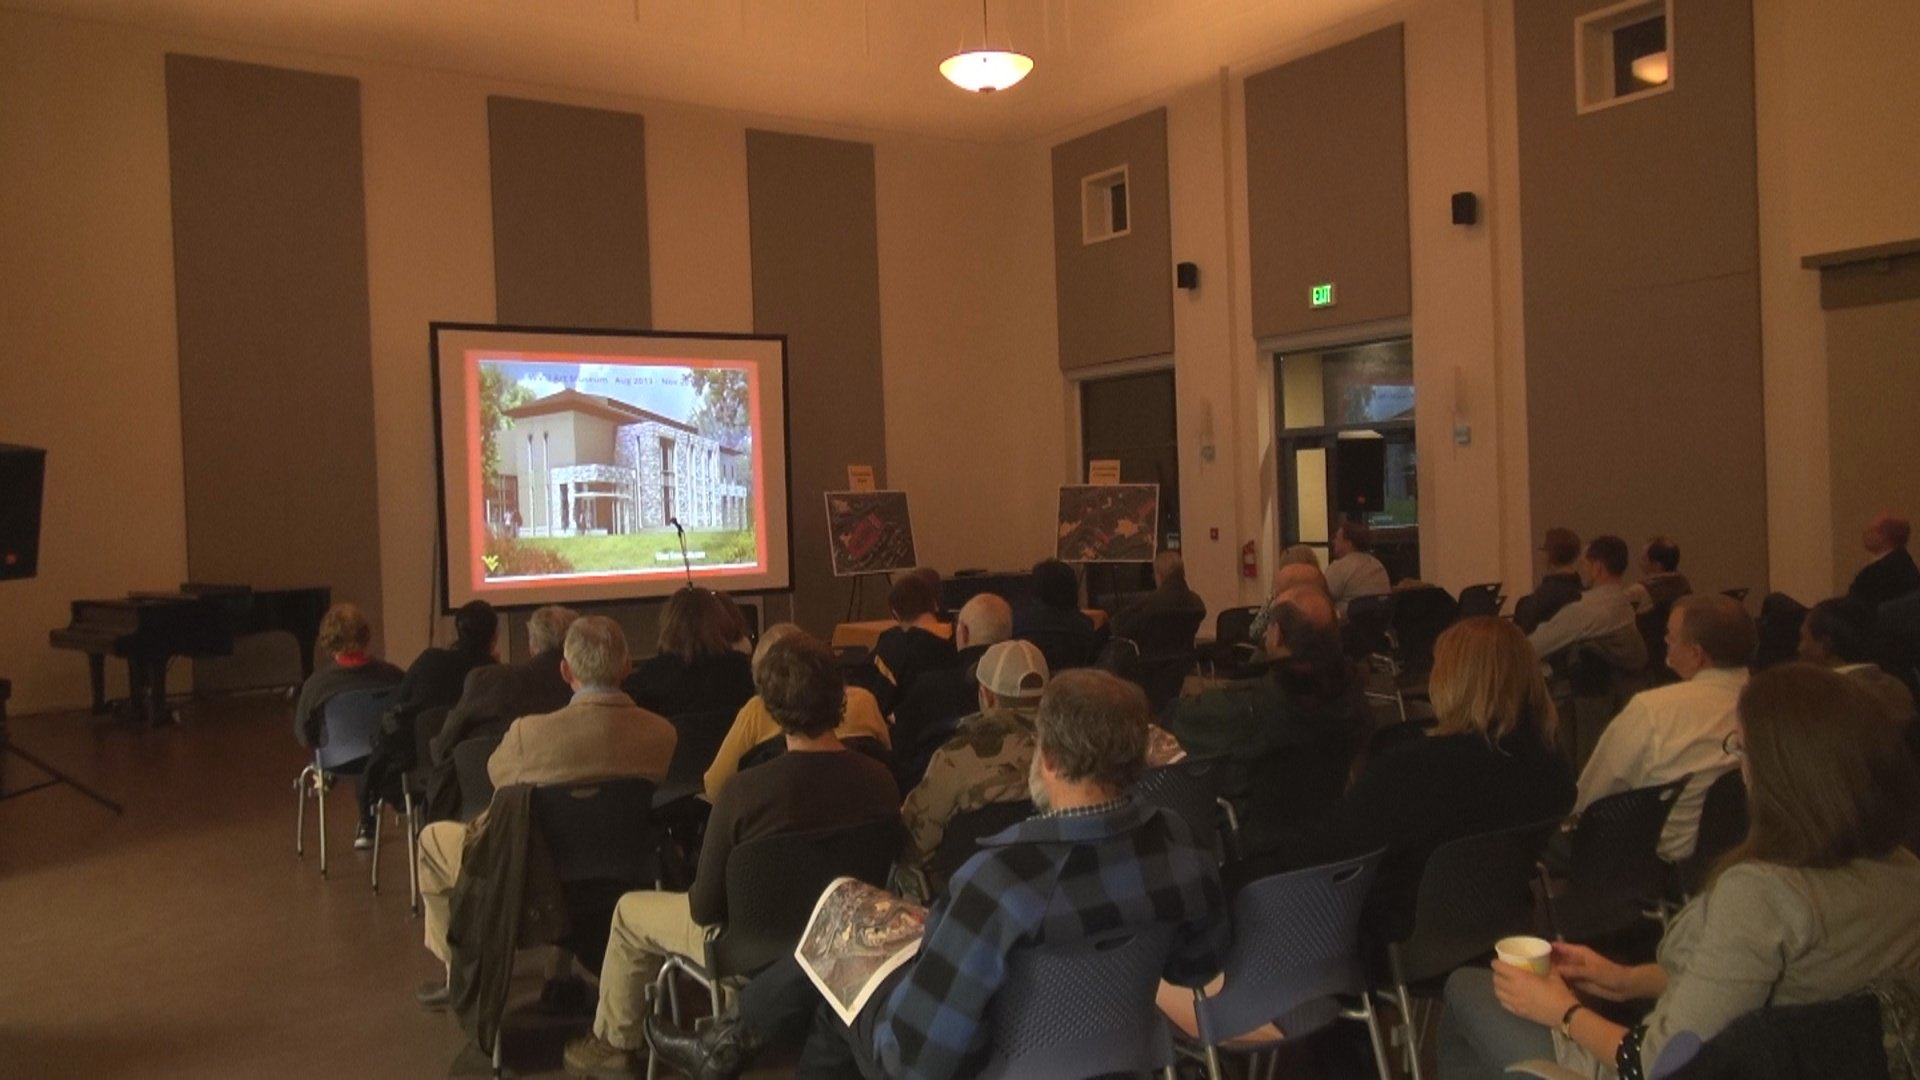 WVU officials held a forum at the old Alumni Center to discuss construction progress